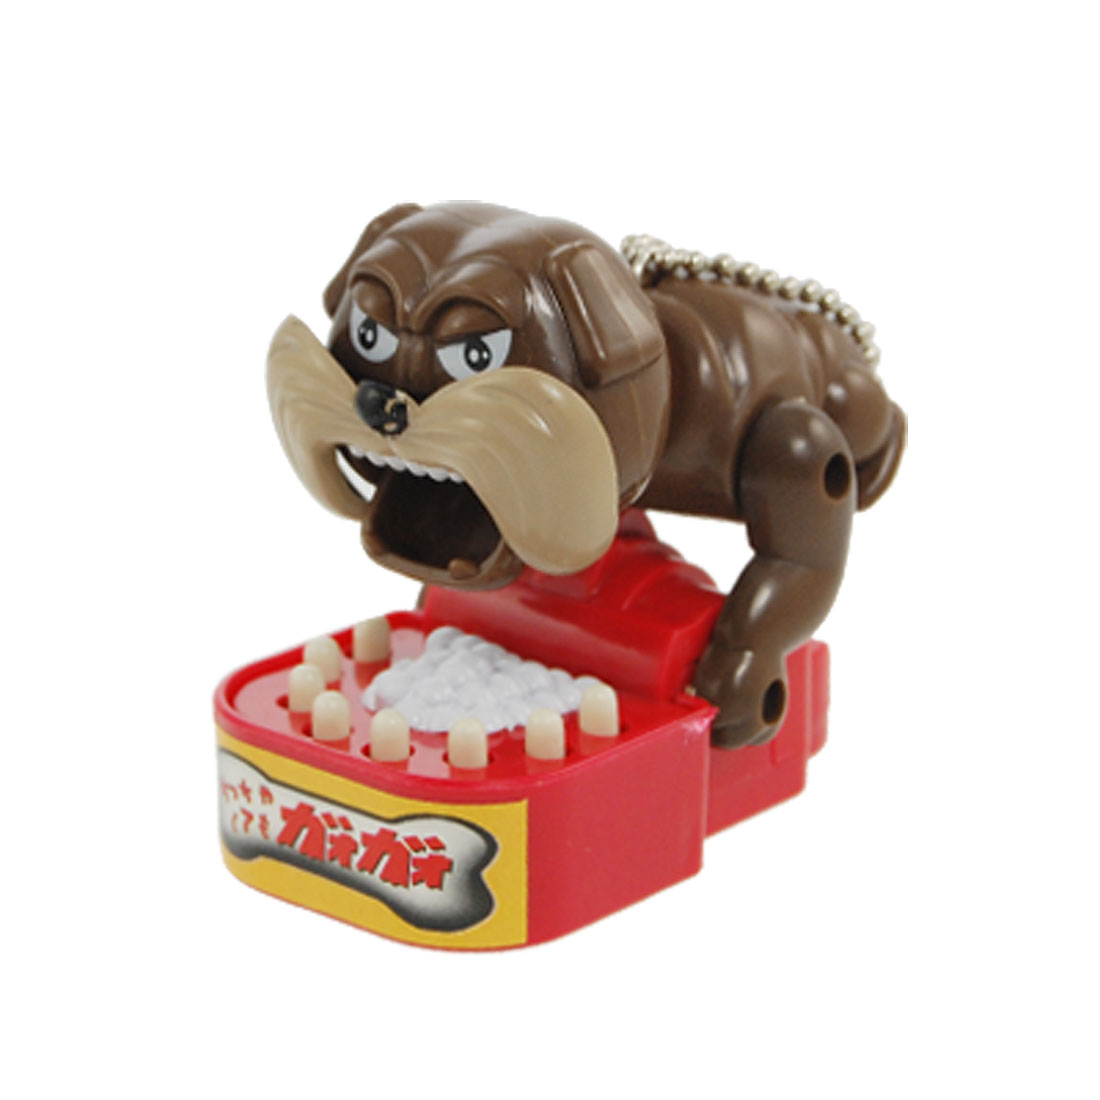 Children Plastic Dog Bite Design Trick Toy Brown Red w Key Chain